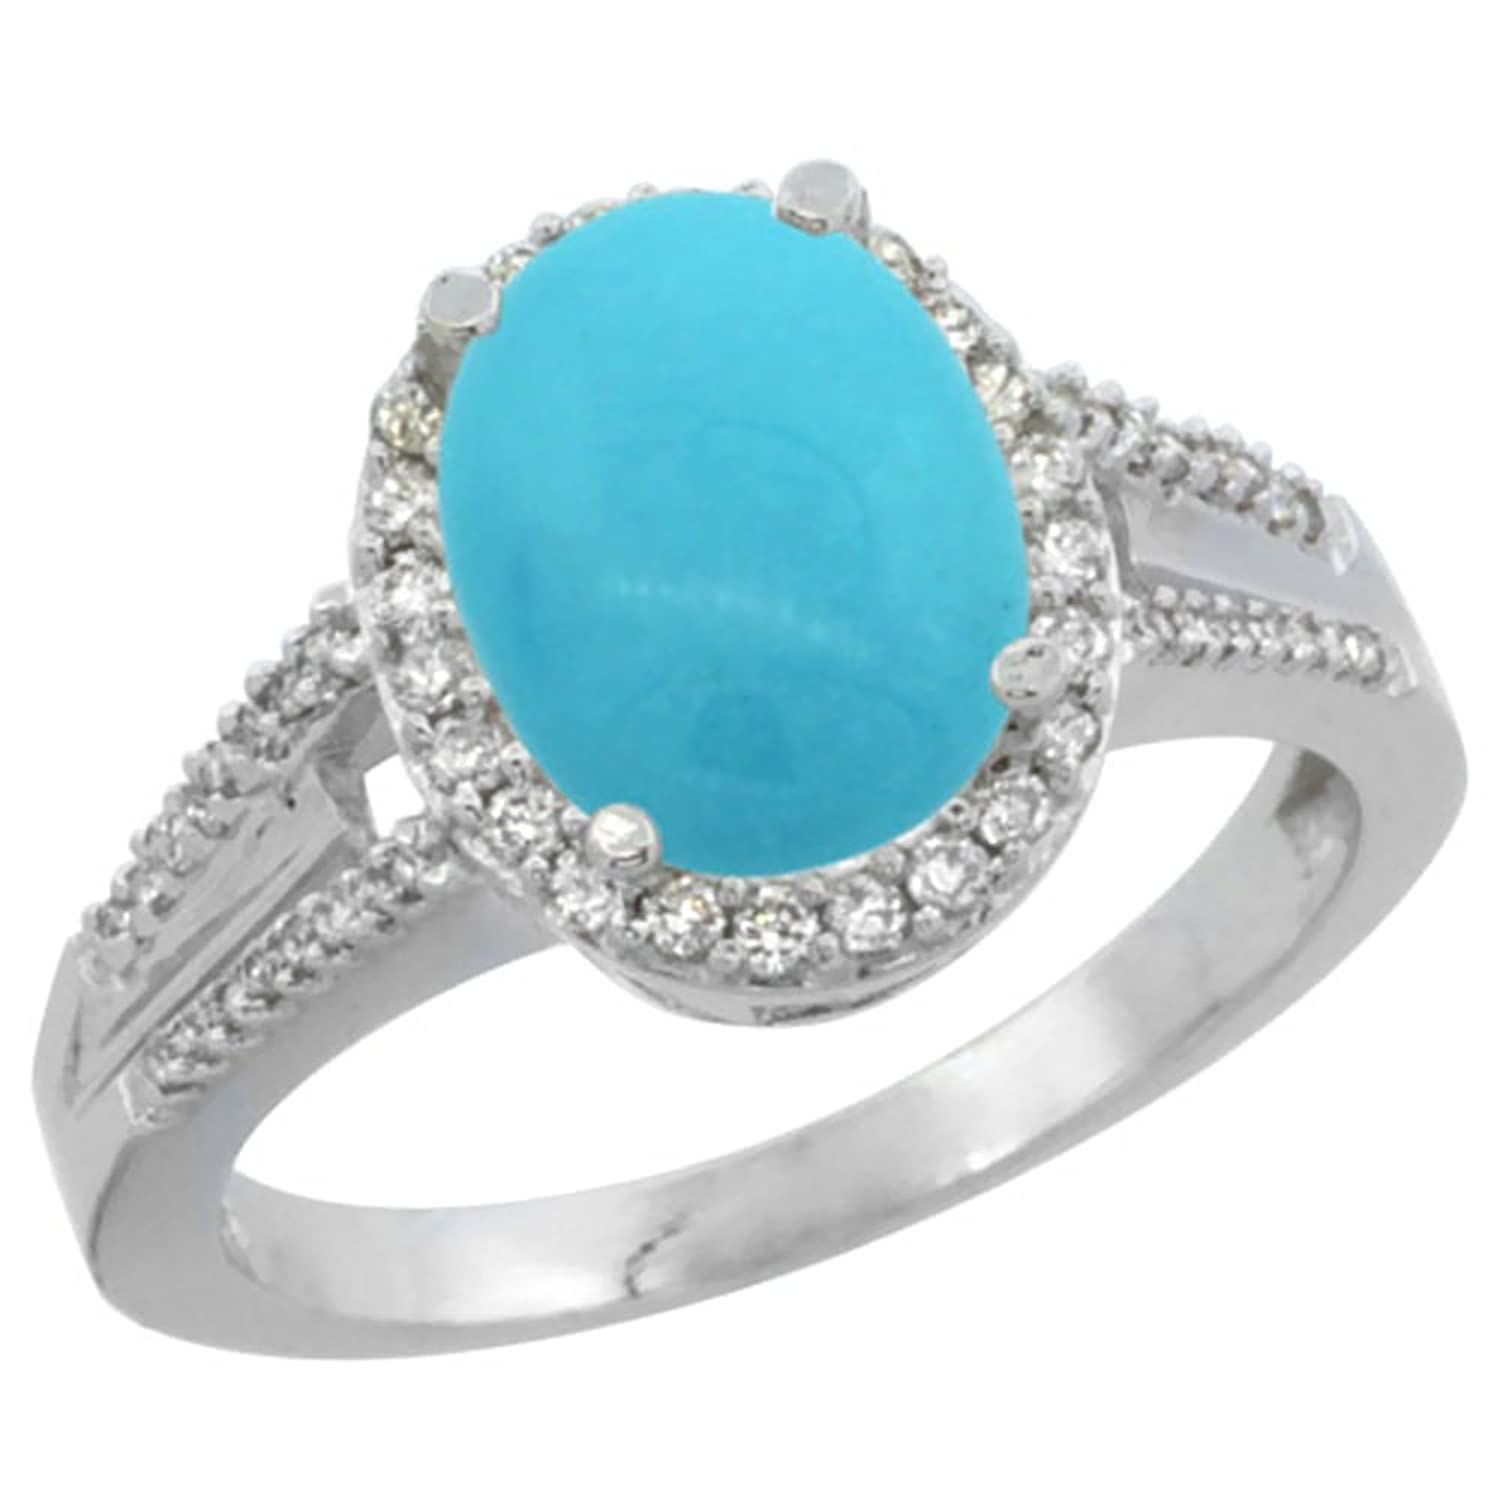 pin s gliter stone pinterest rings ring turquoise